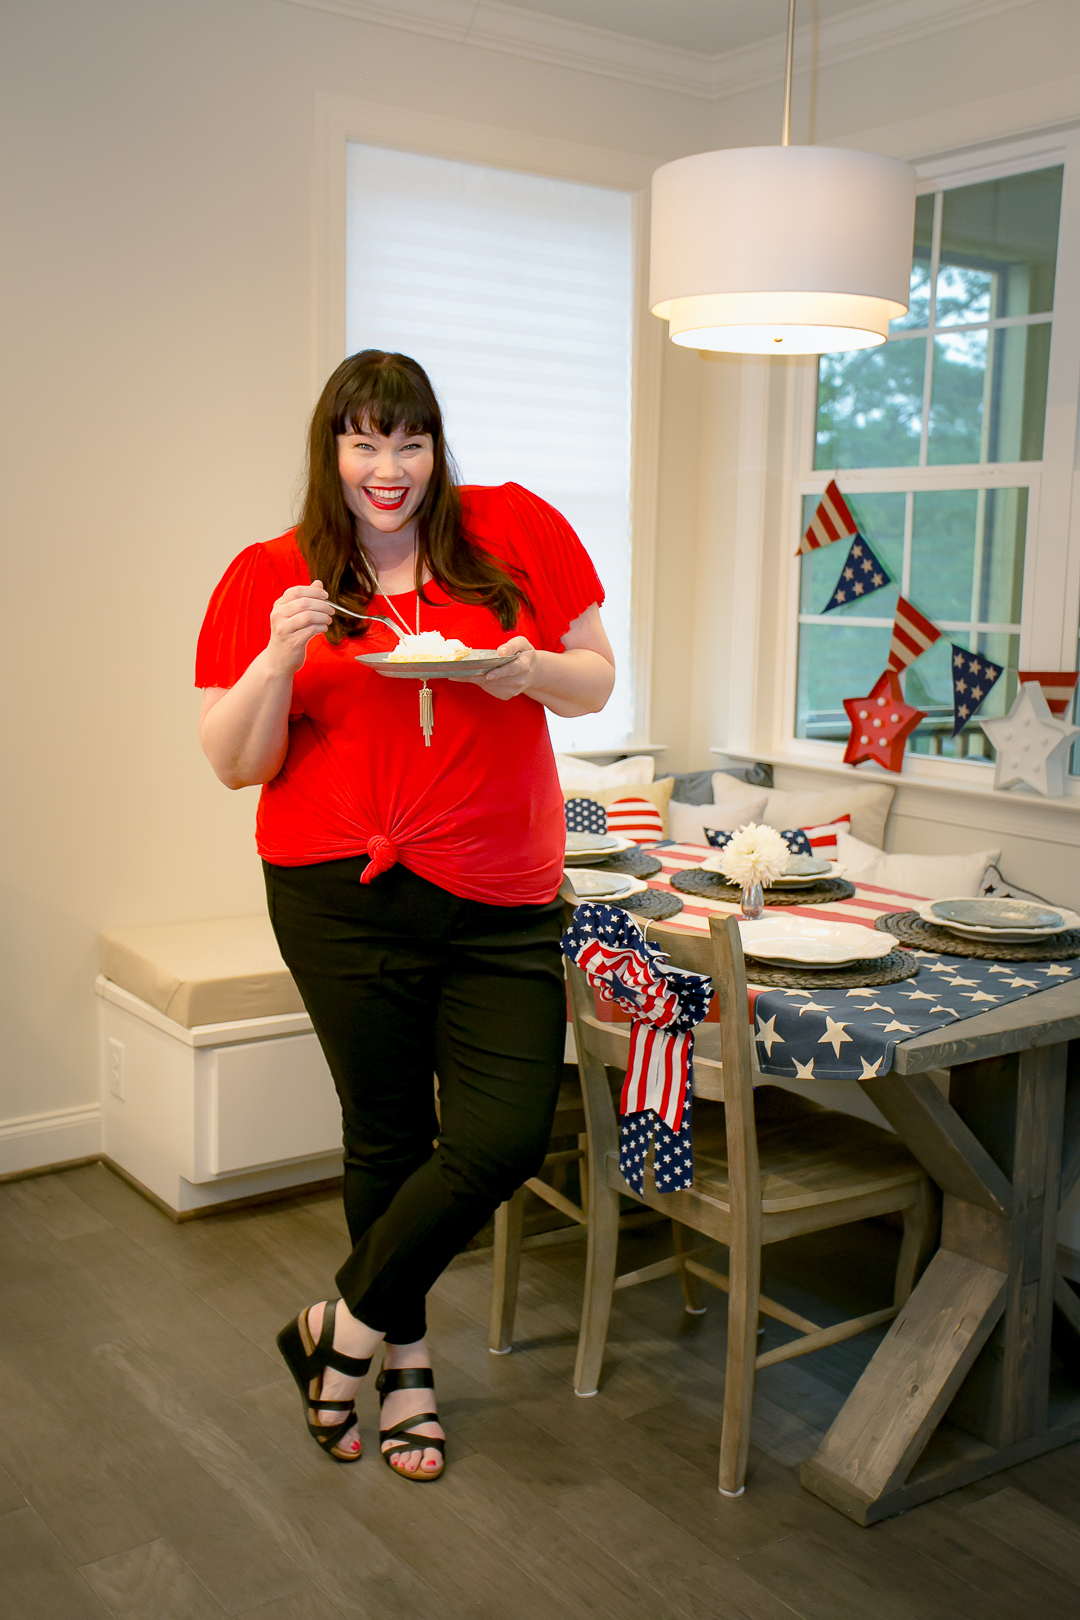 Plus Size Capsule Wardrobe, Avenue, Amber McCulloch, Style Plus Curves, Plus Size Blogger, Red Top, Black Jeans, Travel Wardrobe